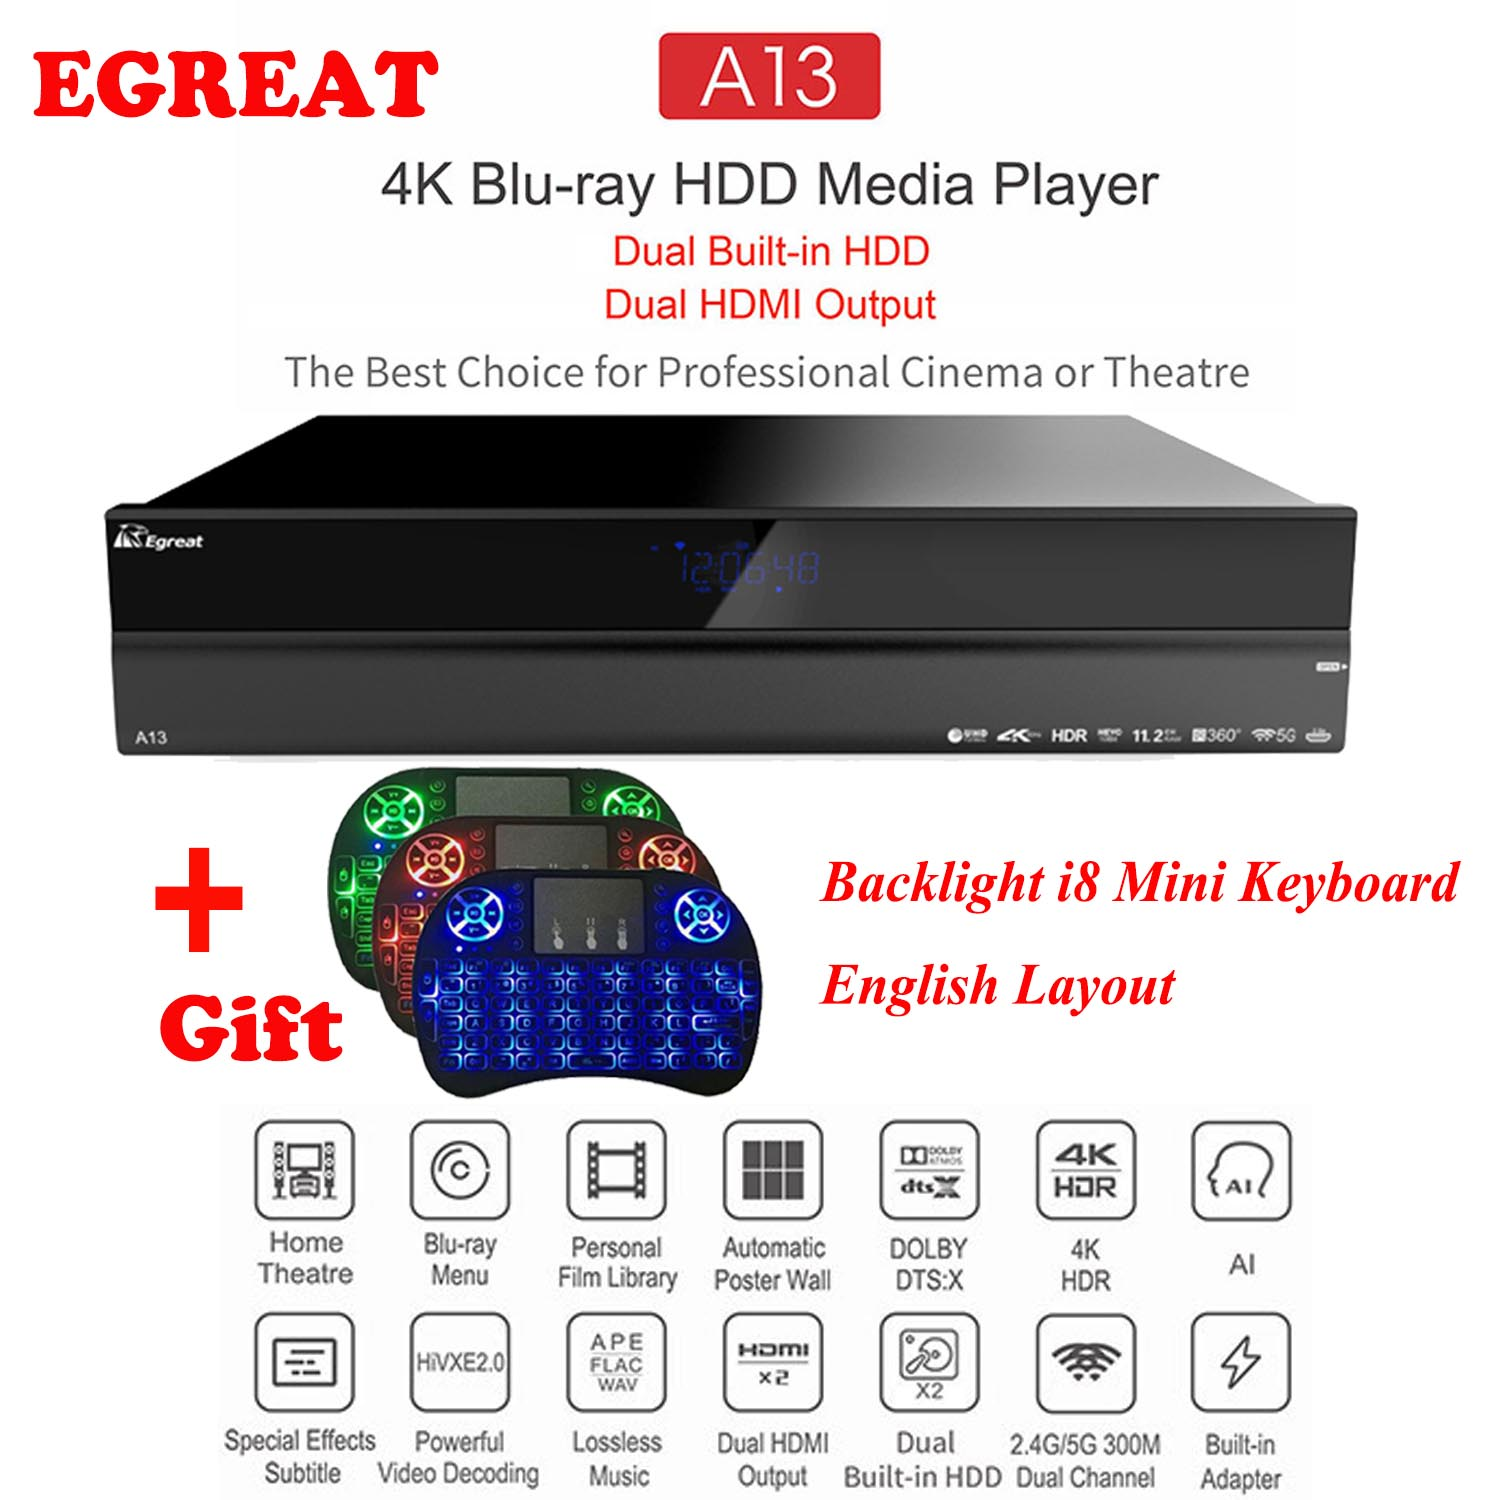 2019-High-end Sistema Home Theatre Egreat A13 4 K UHD Blu-Ray HDD Media Player, dual Built-In HDD, Doppia Uscita HDMI Android TV Box